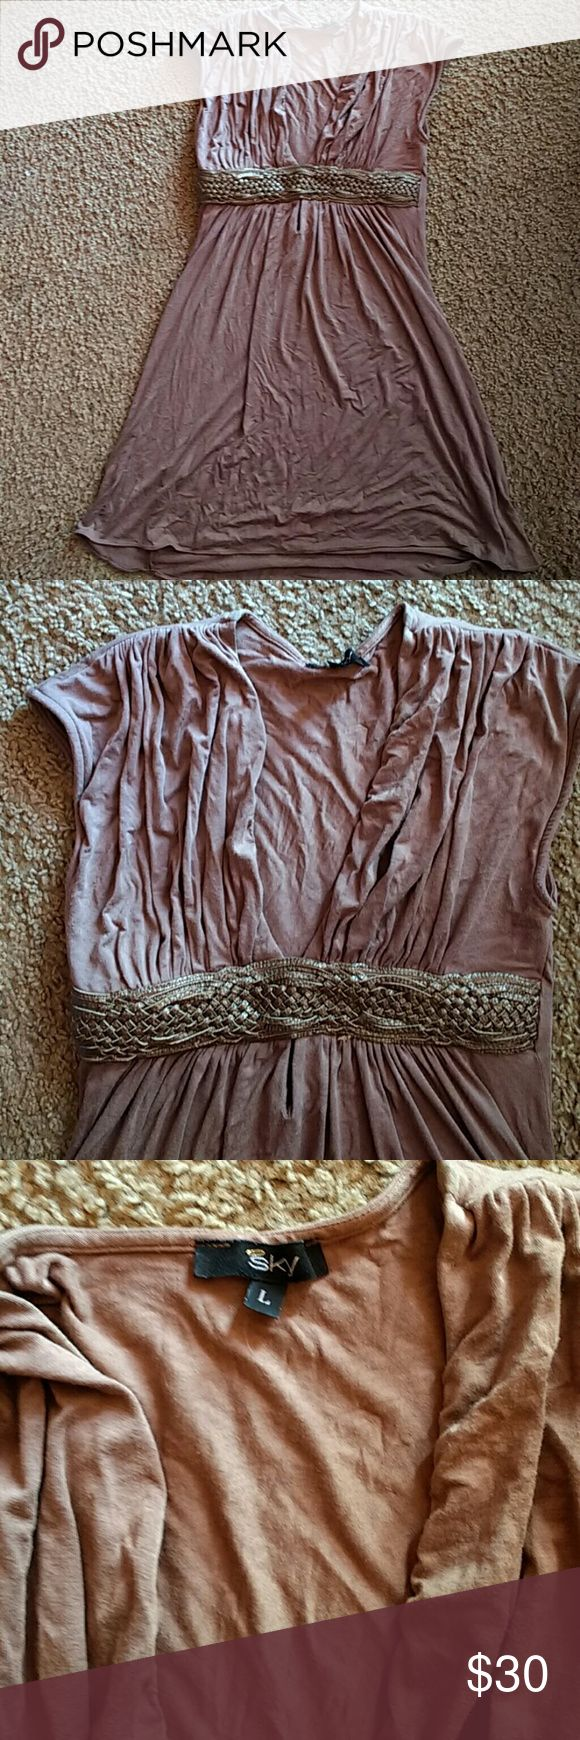 Brown Sky Top with bronze leather waist Large This Sky top is in decent condition but does have a little piling in the armpits. Super flattering in the chest region. I used to wear it as a tunic but could also be worn as a dress if you're a natural medium or small.   Make me an offer! Great deals if you bundle my items!!! Sky Tops Tees - Short Sleeve